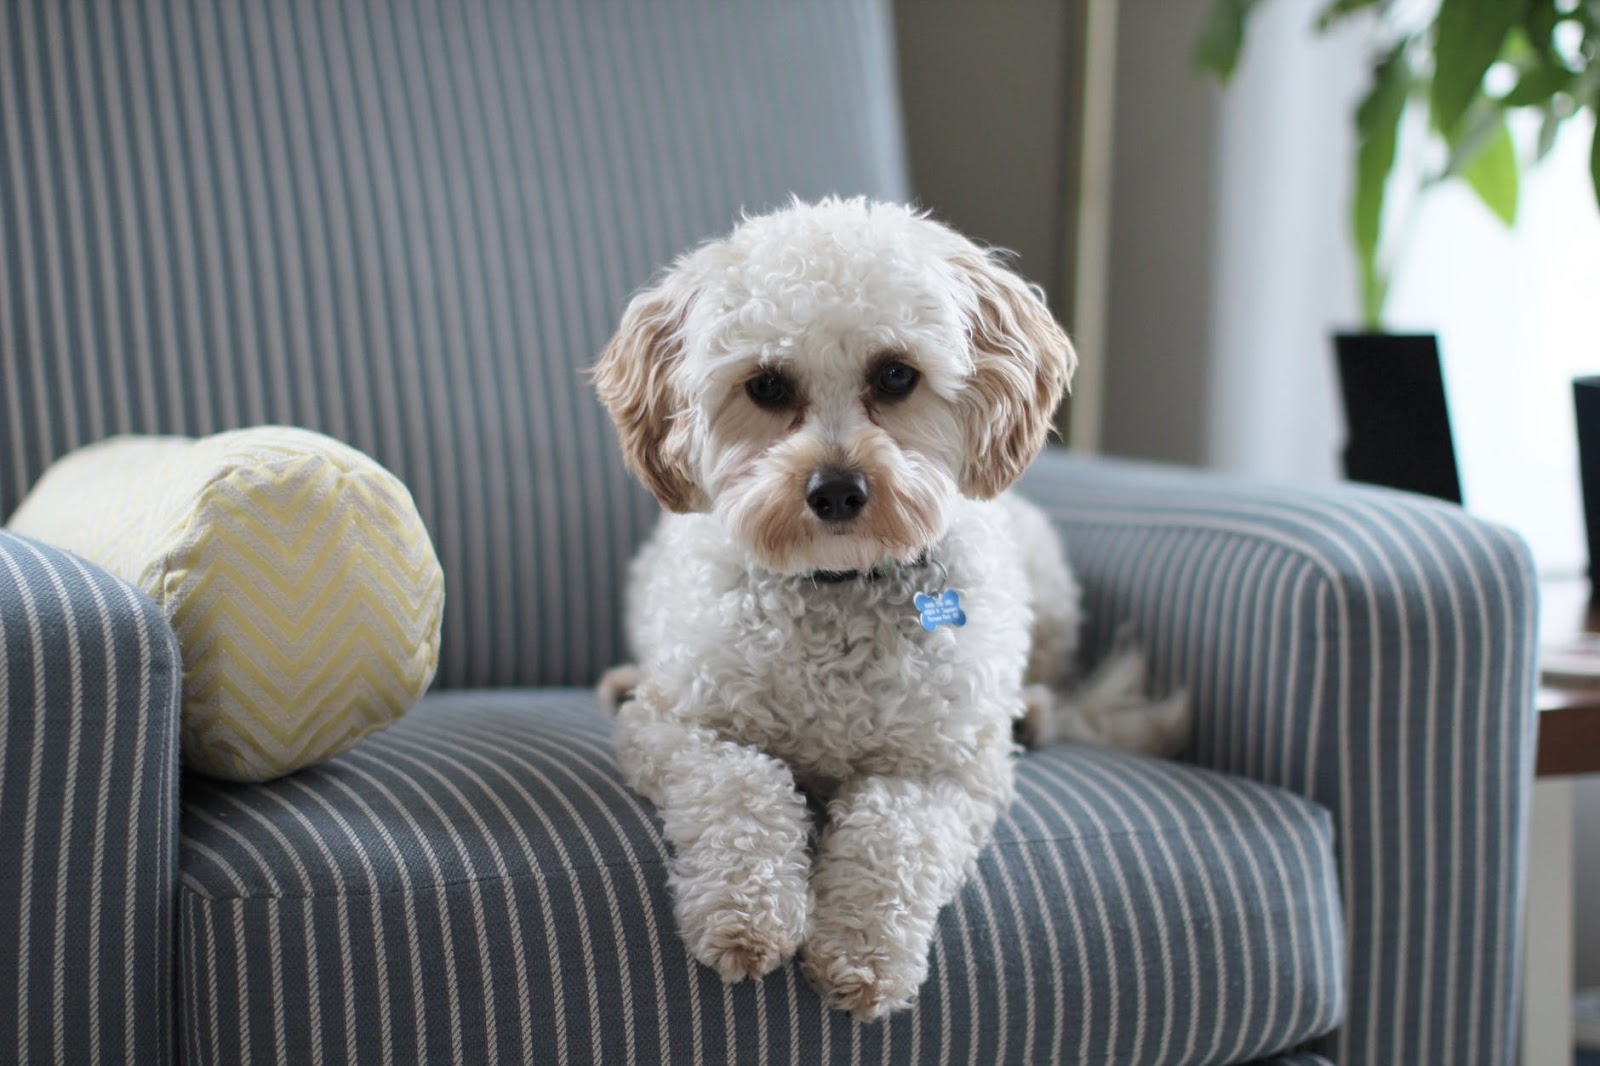 small white poodle puppy sitting on a striped couch